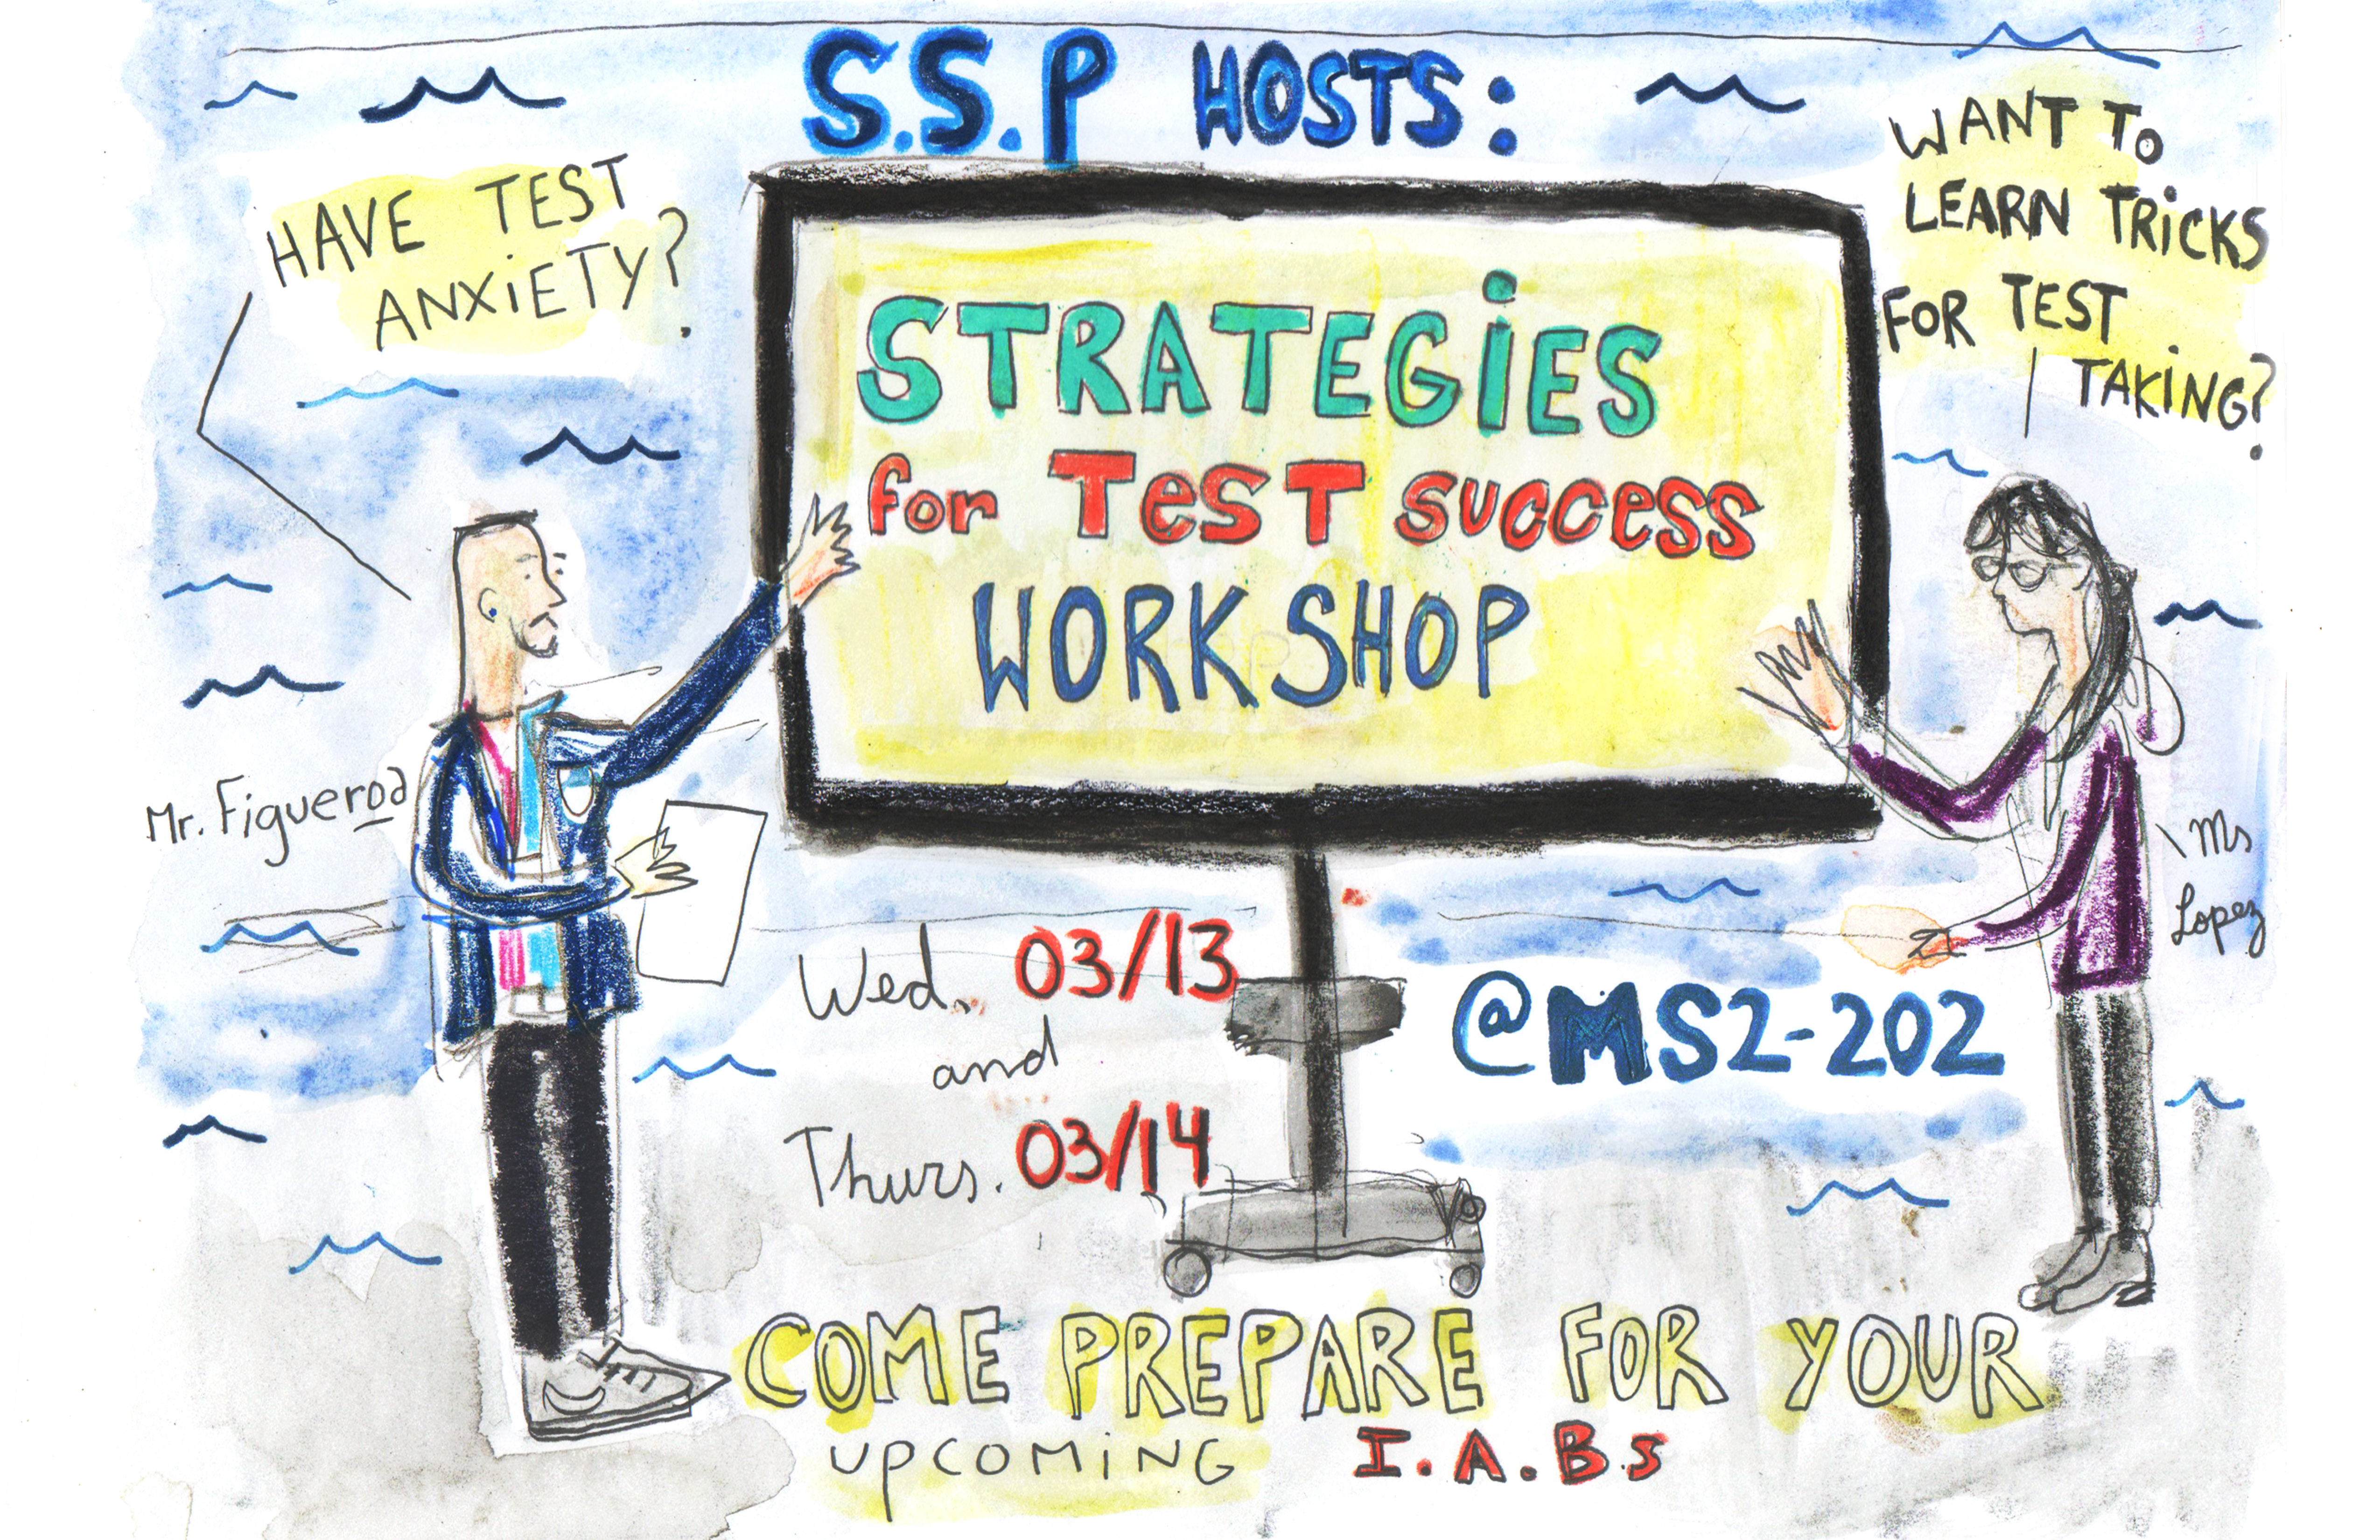 strategiesfortestsuccessworkshop